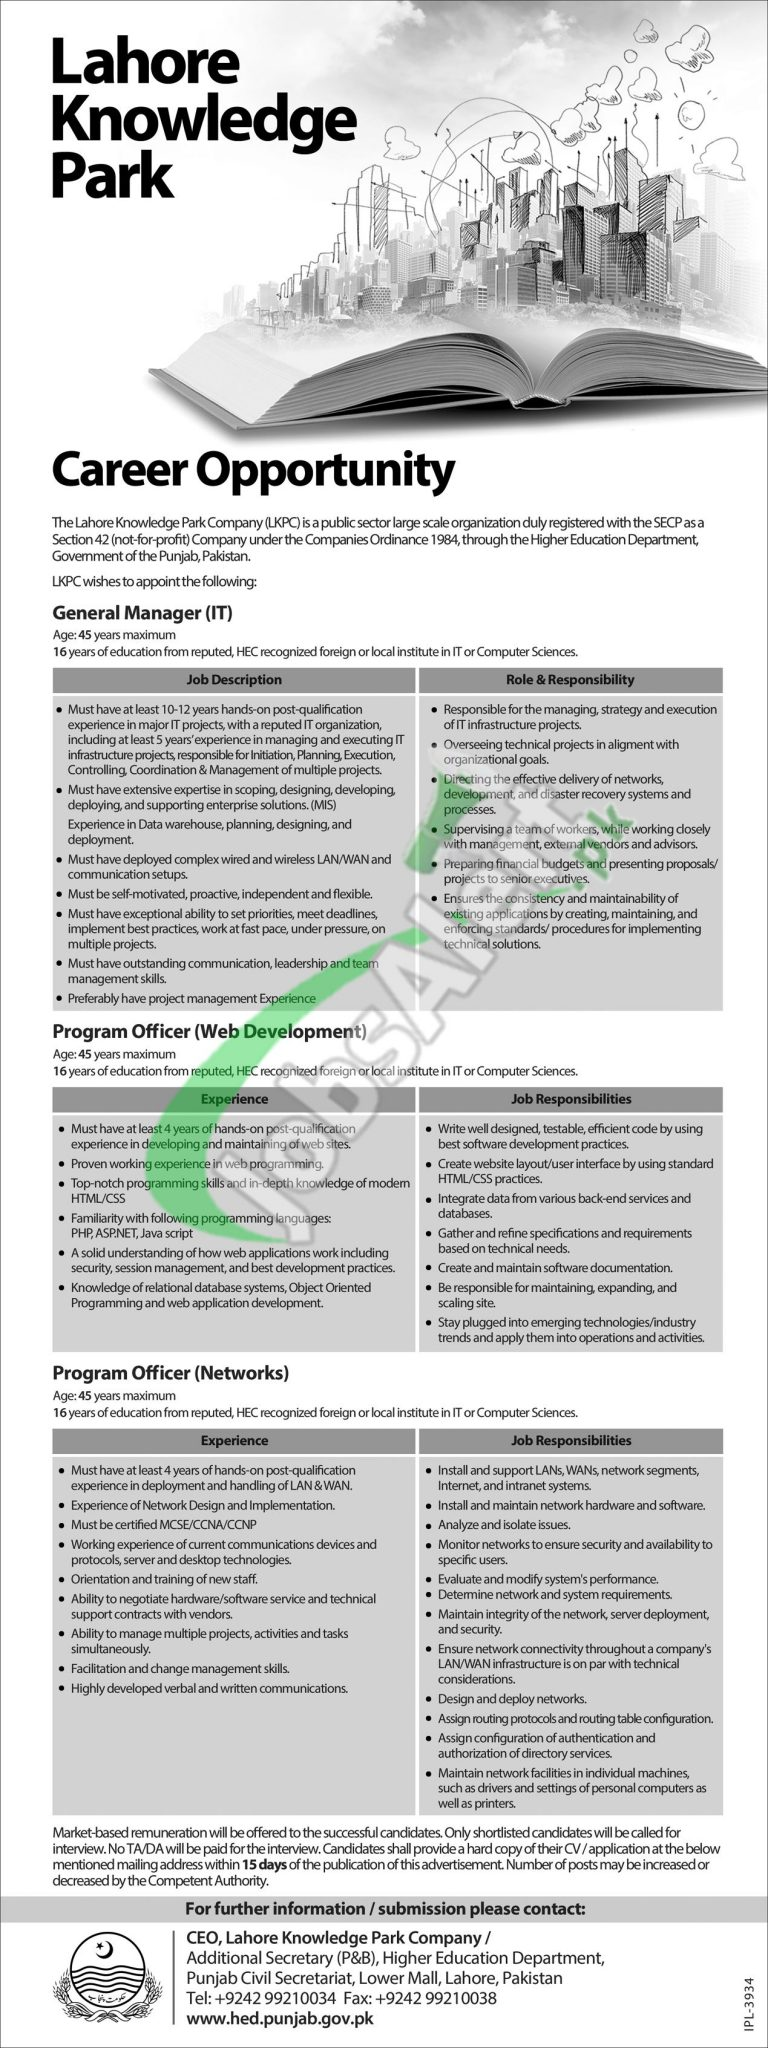 Jobs in Lahore Knowledge Park